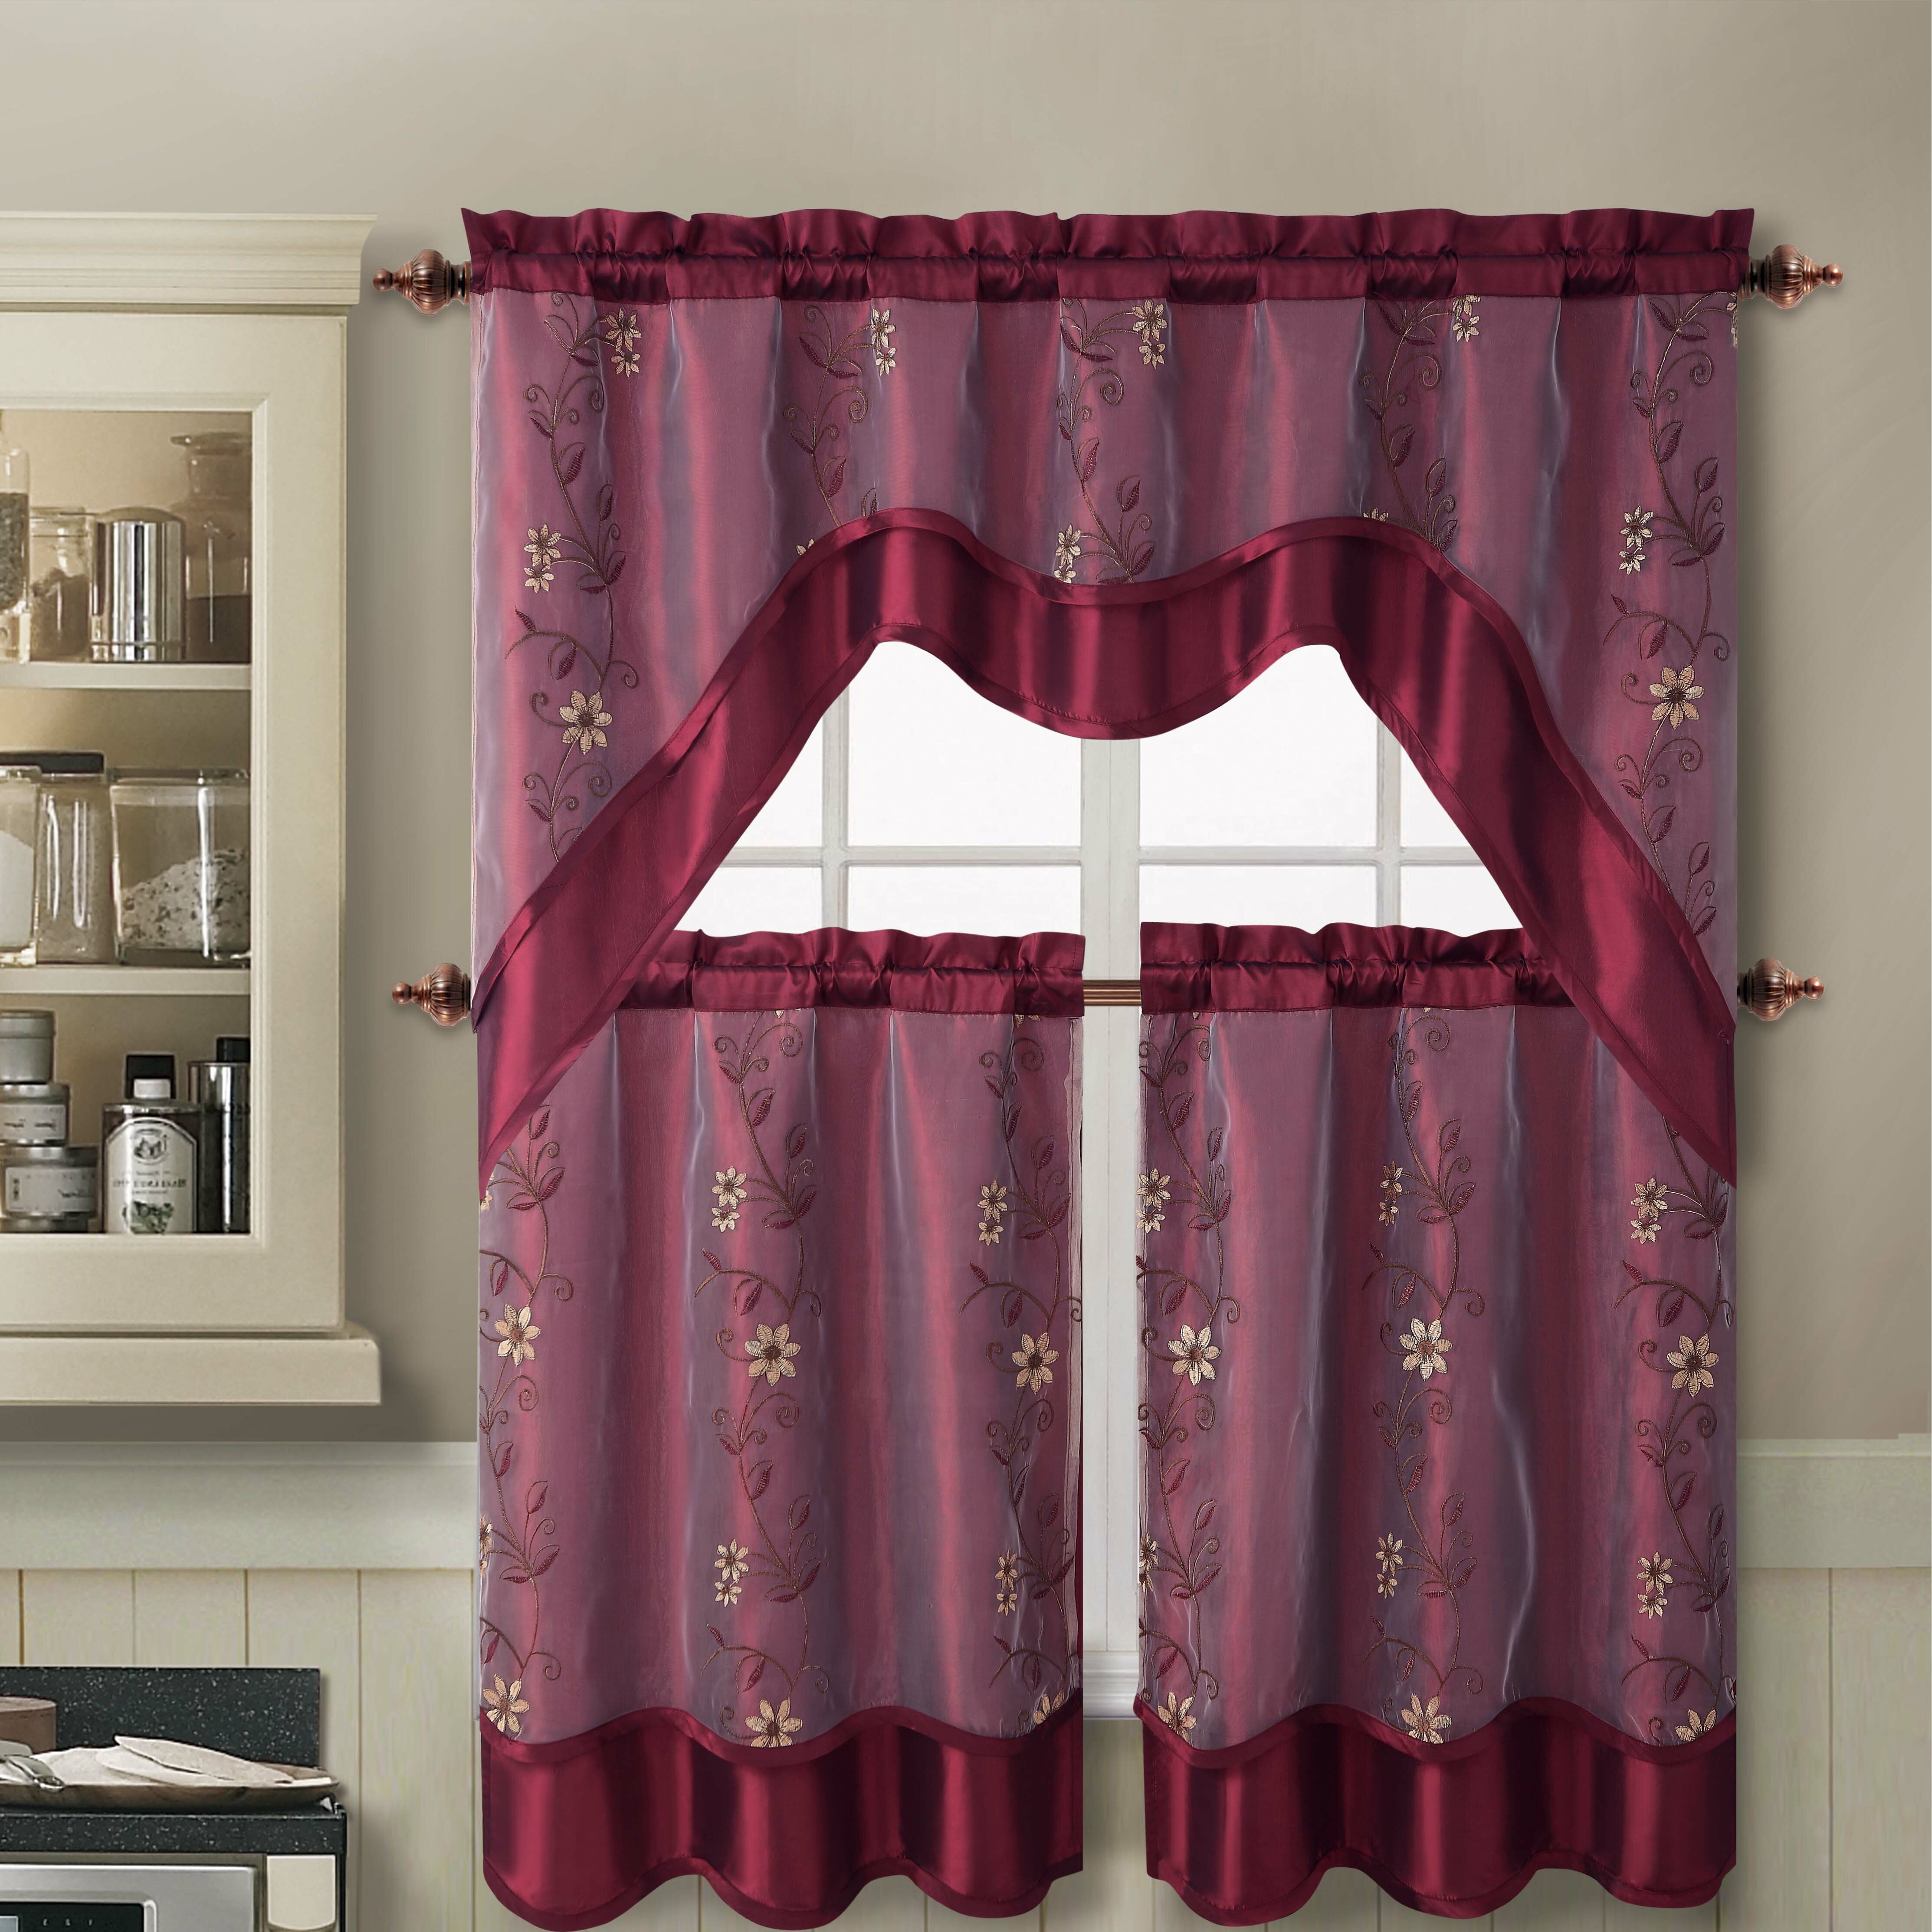 red kitchen curtains - window curtains & drapes